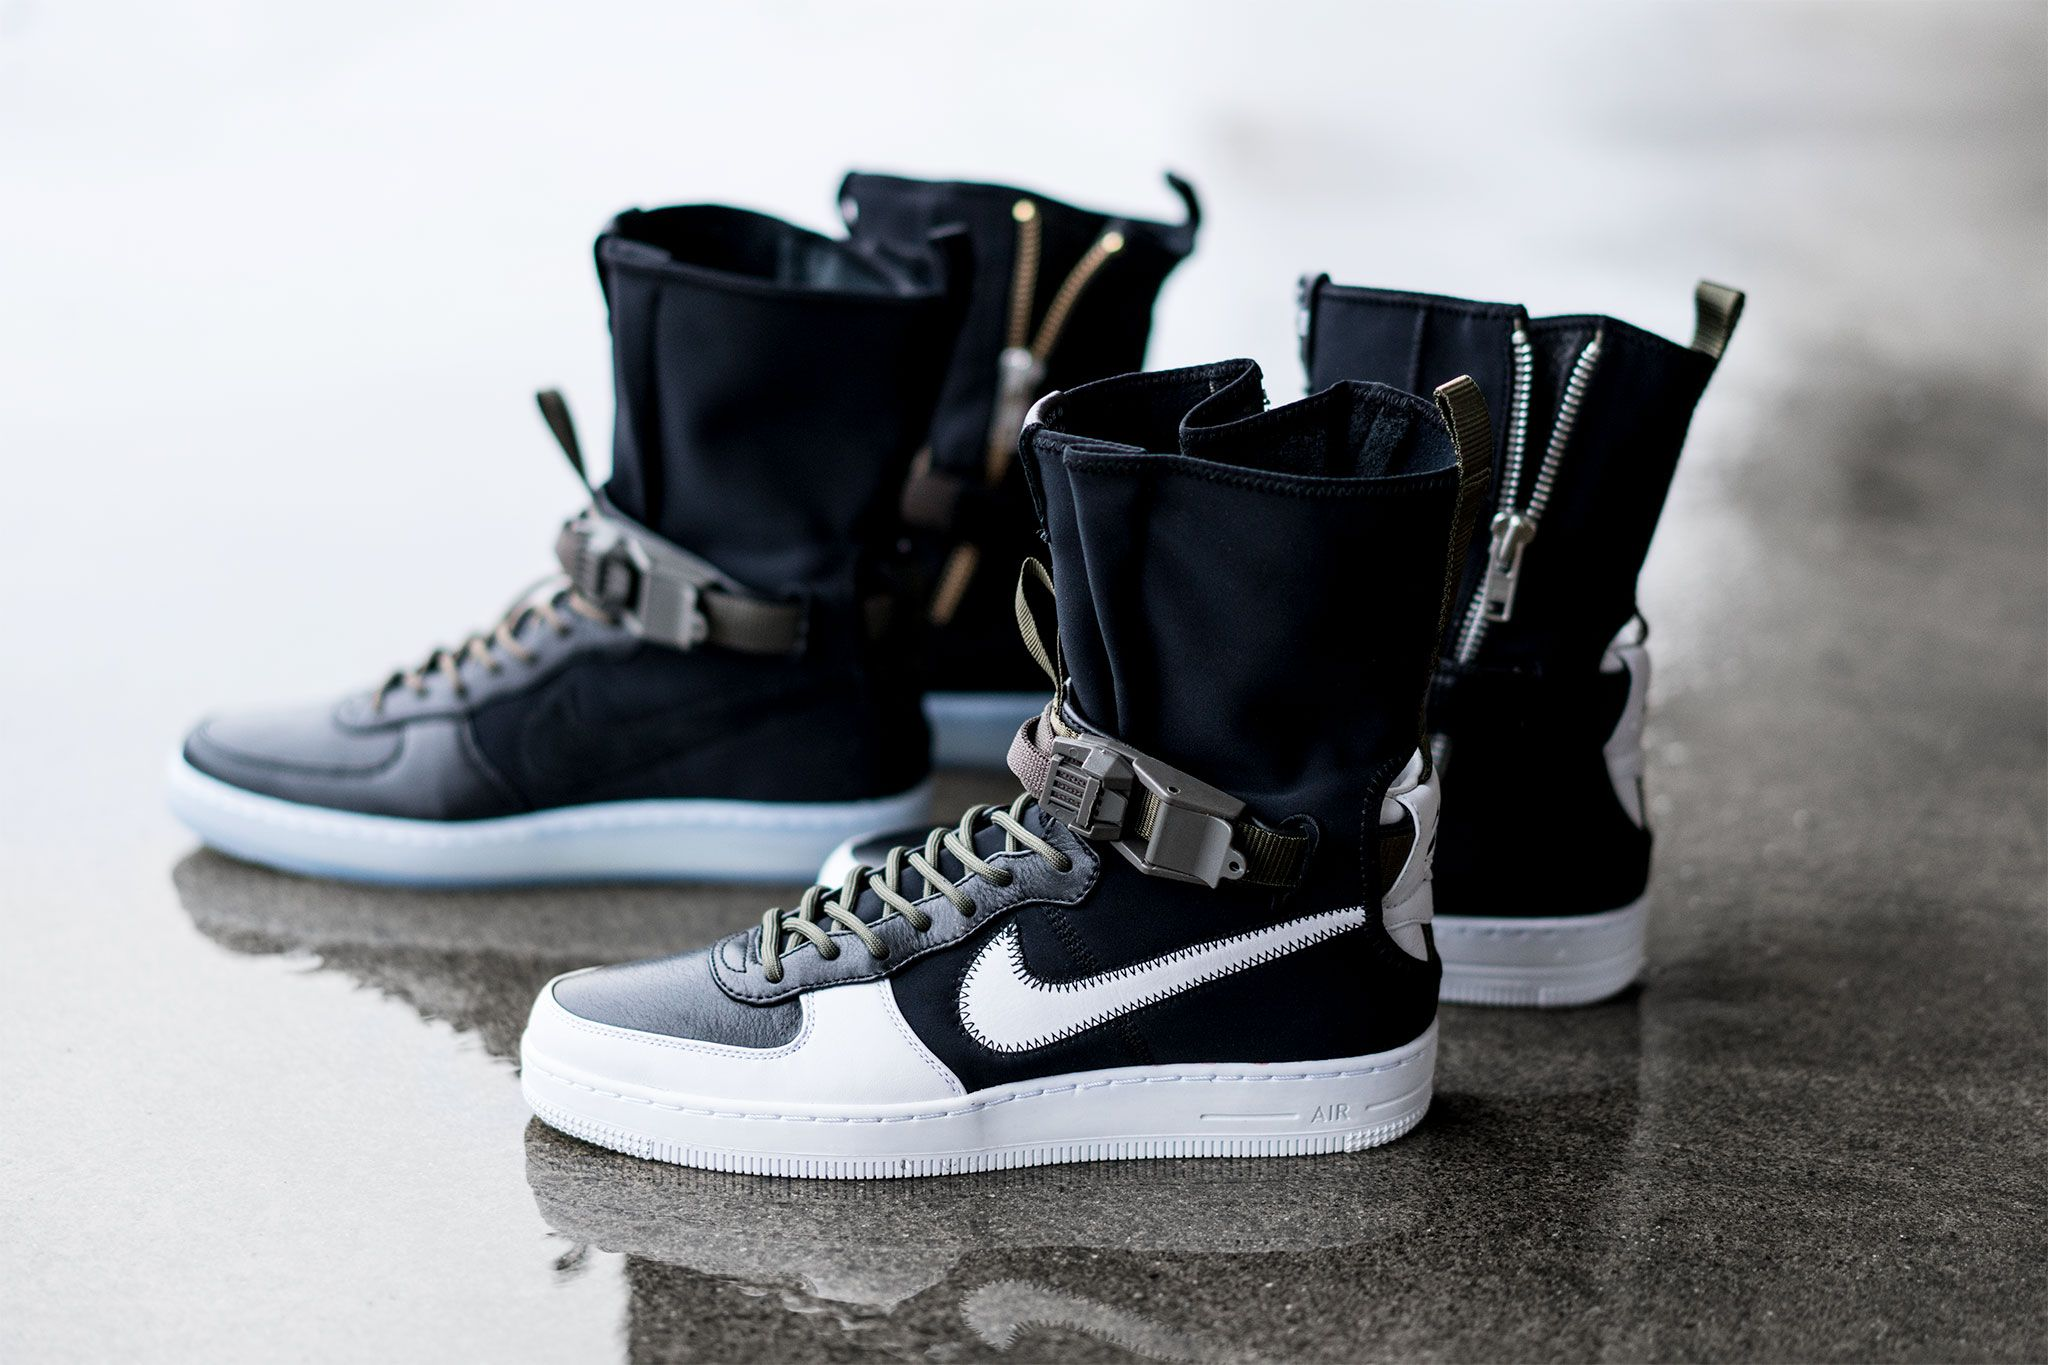 NikeLab x ACRONYM® AF1 Downtown Hi SP | NikeLab and ACRONYM® re-align for  spring / summer 17 on another exclusive iteration of the iconic Air Force 1.